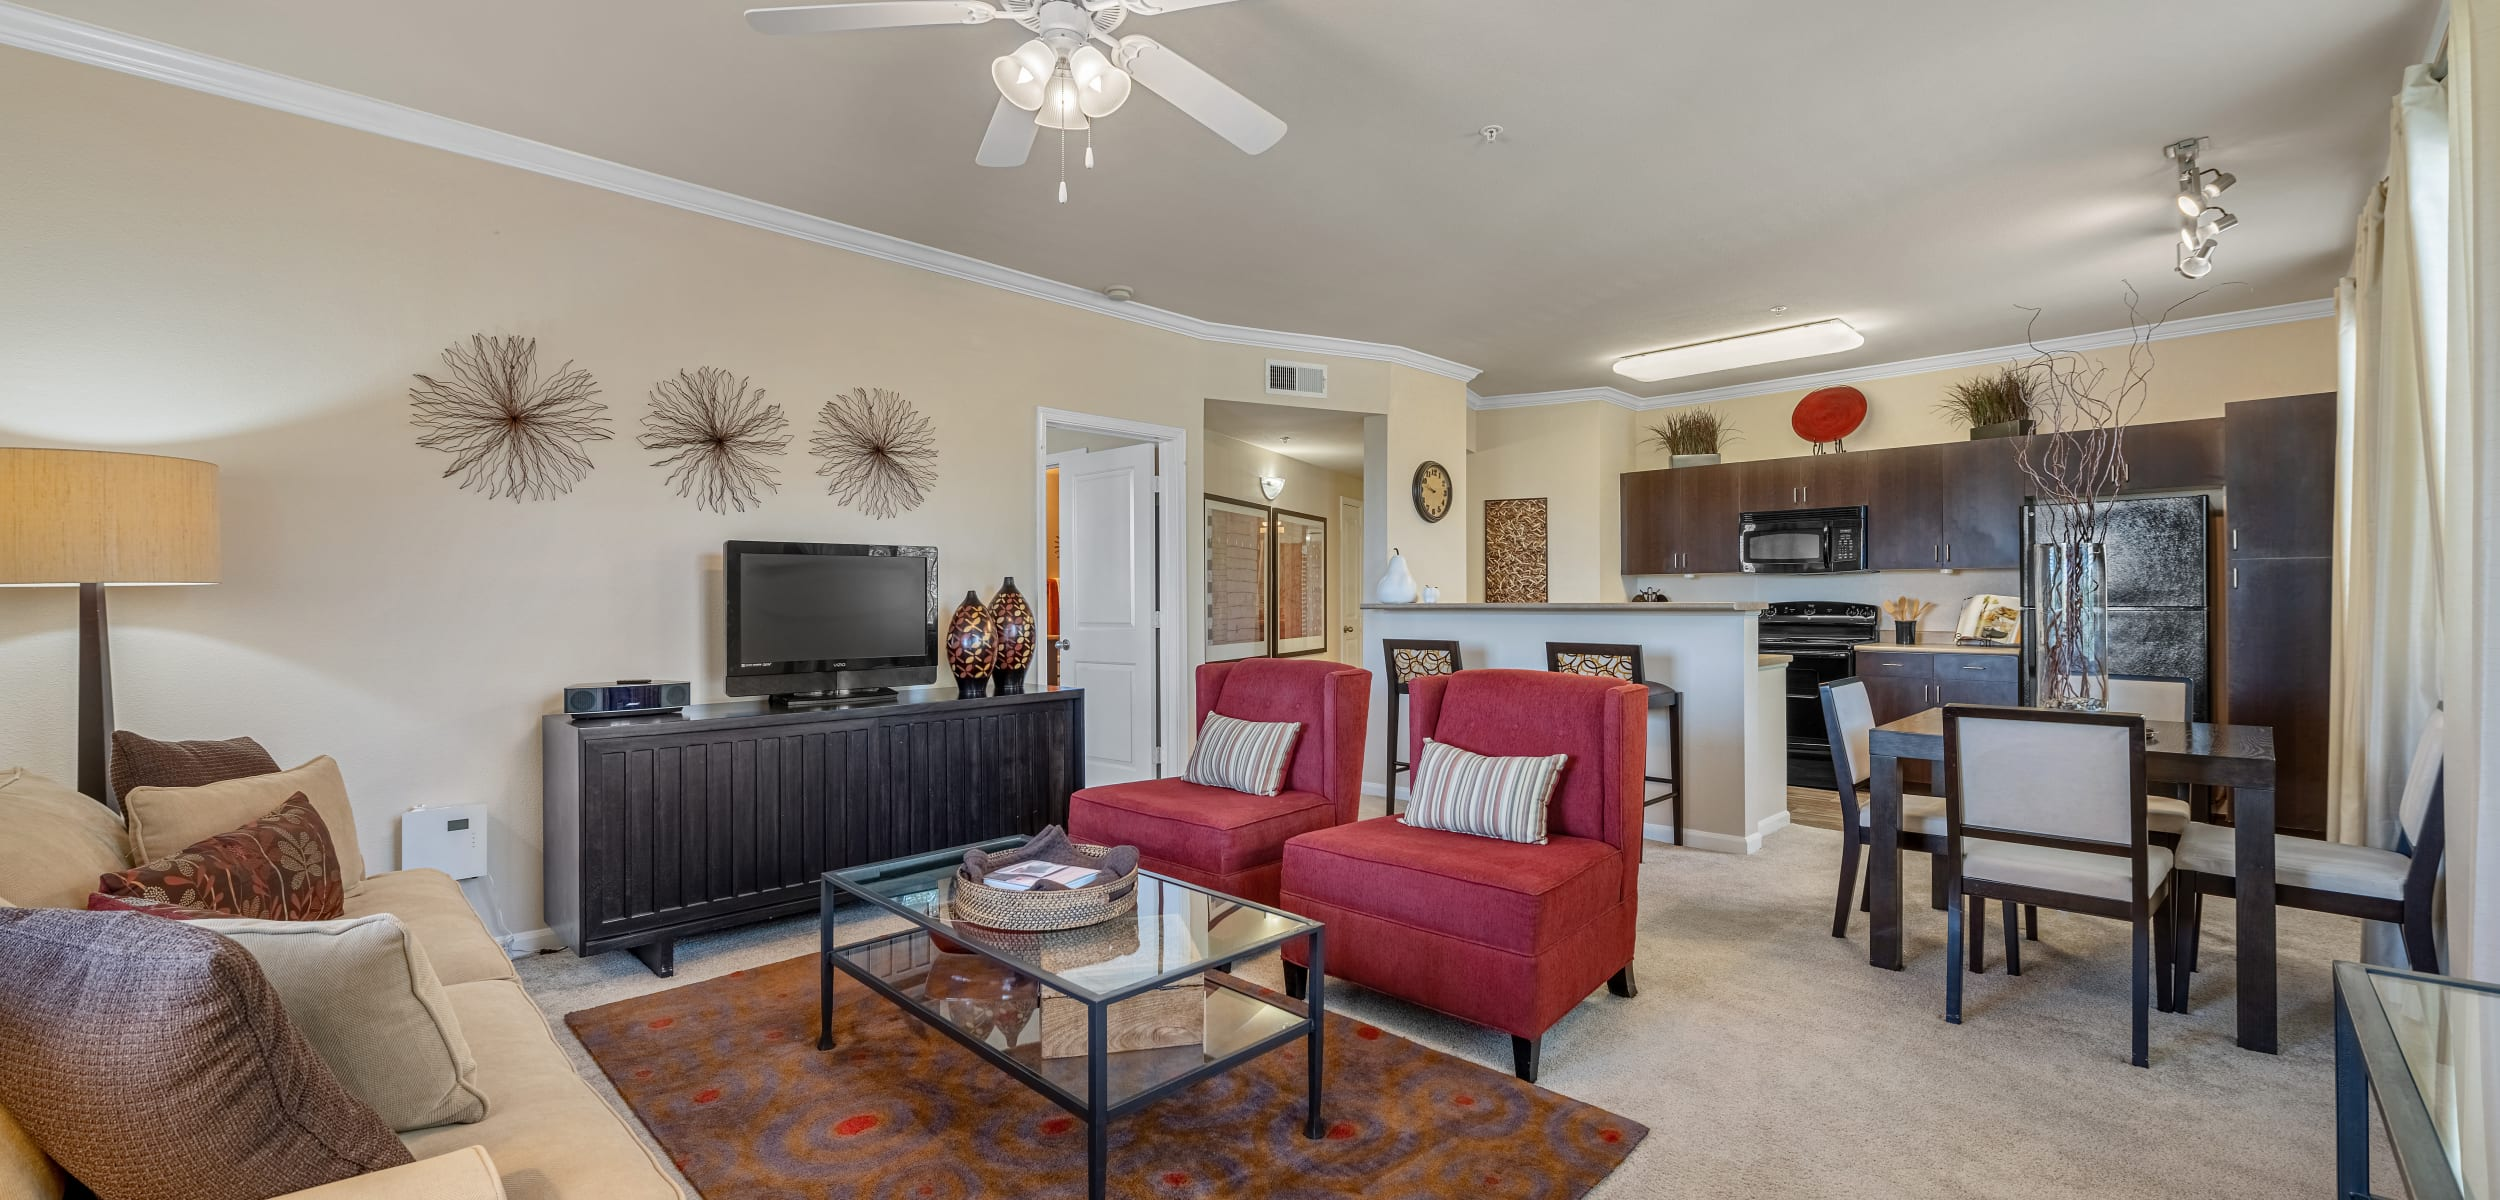 Bright and cheerful living area with carpet and ceiling fan at Marquis at Sonoran Preserve in Phoenix, Arizona